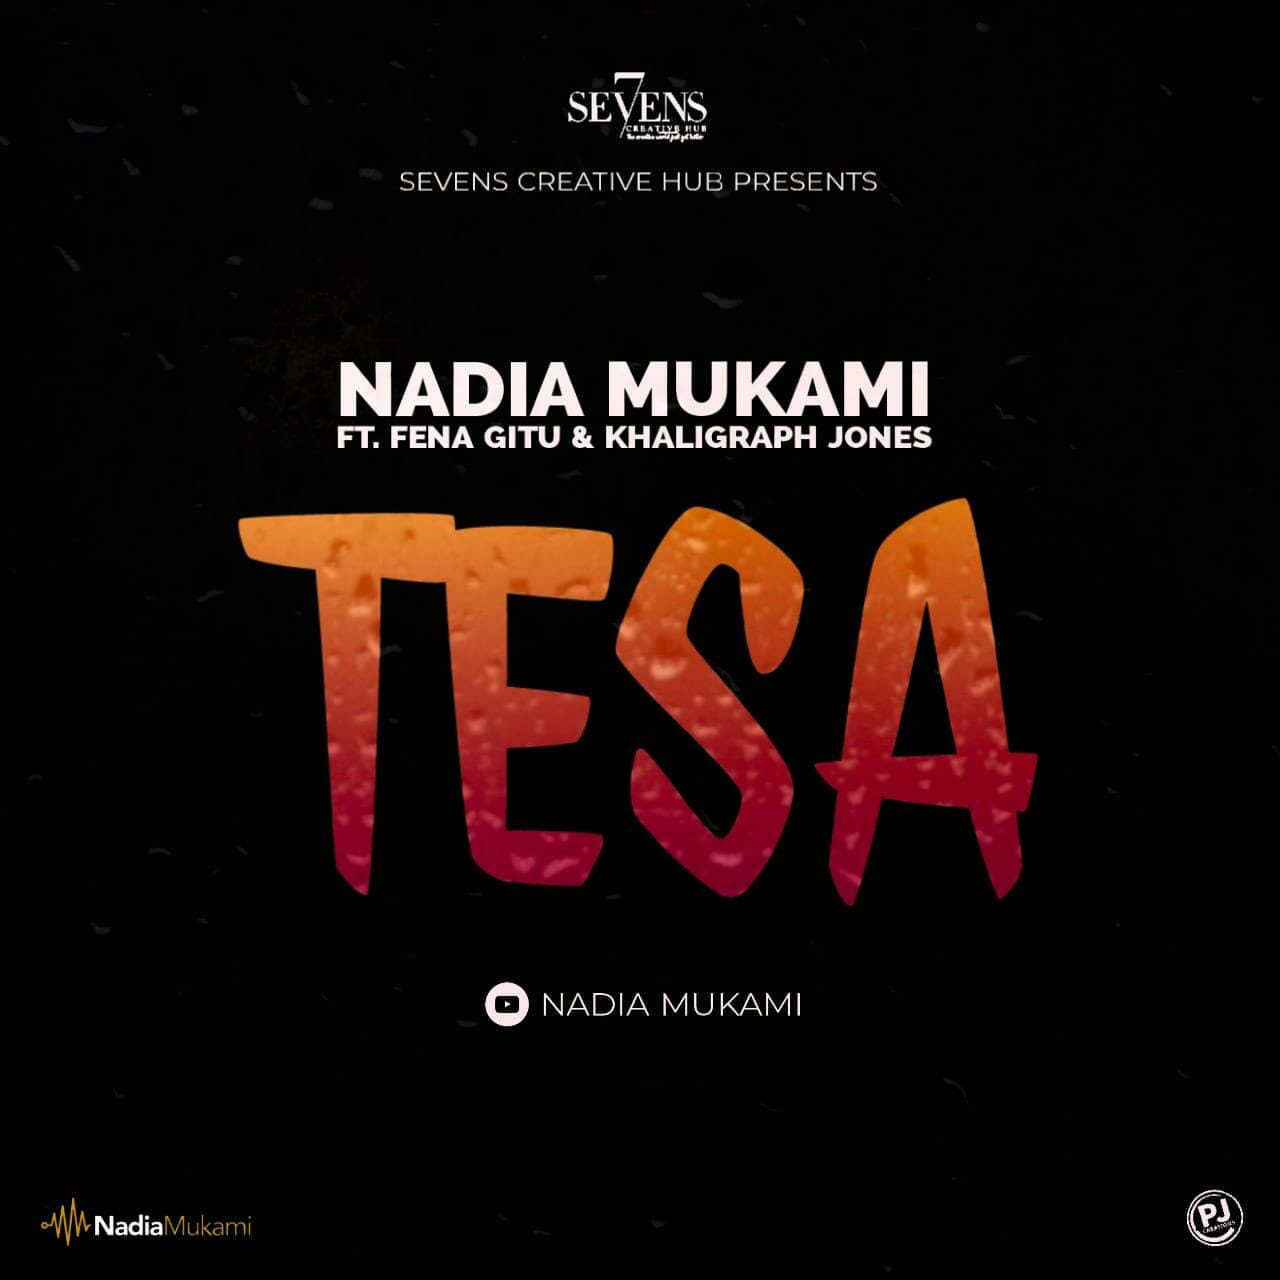 Nadia Mukami featuring Fena Gitu and Khaligraph Jones – Tesa Official HD Music Video